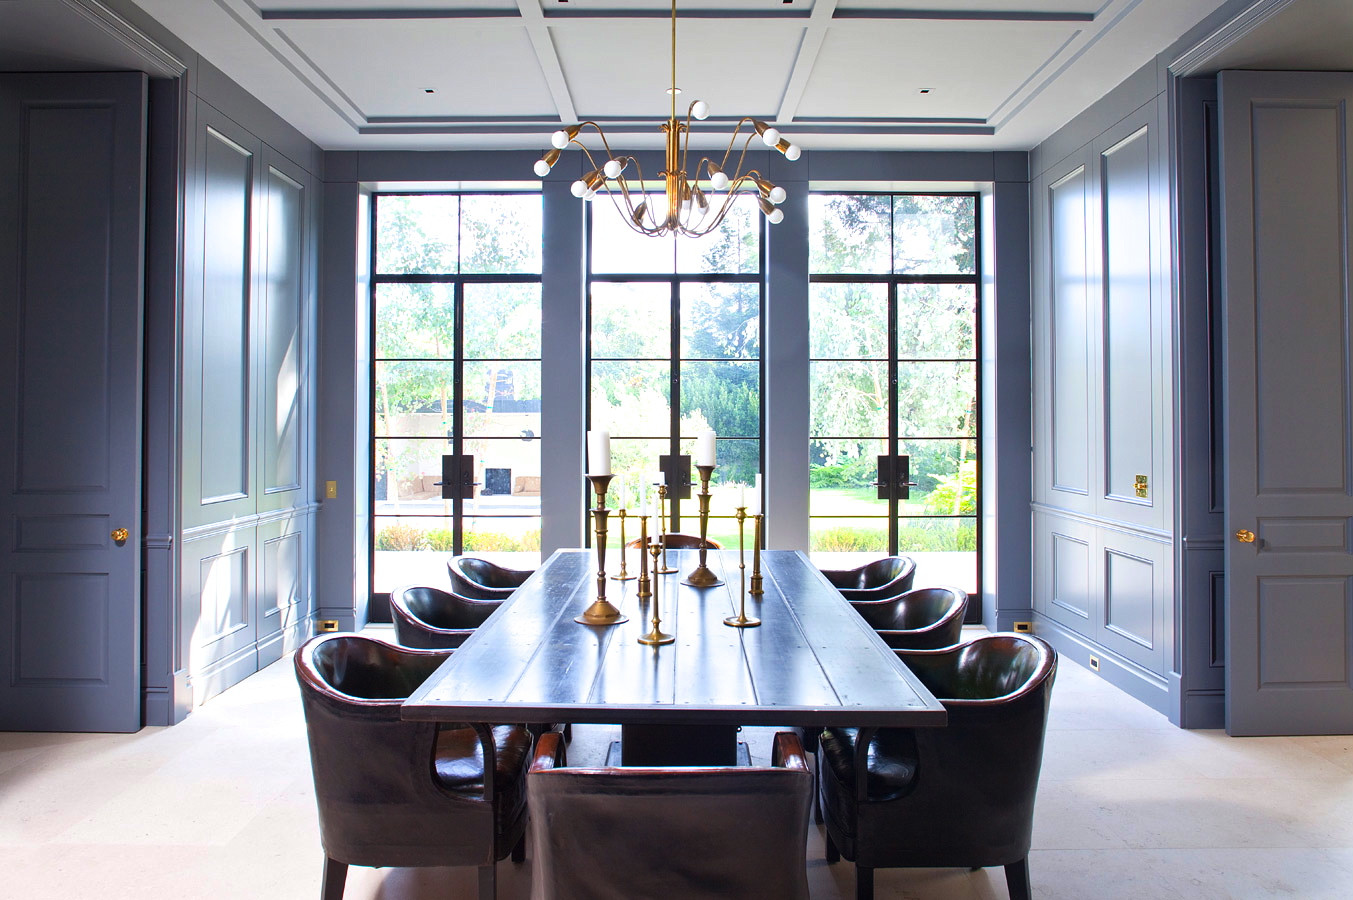 Best ideas about The Dining Room . Save or Pin Formal Dining Room Sets with Specific Details Now.